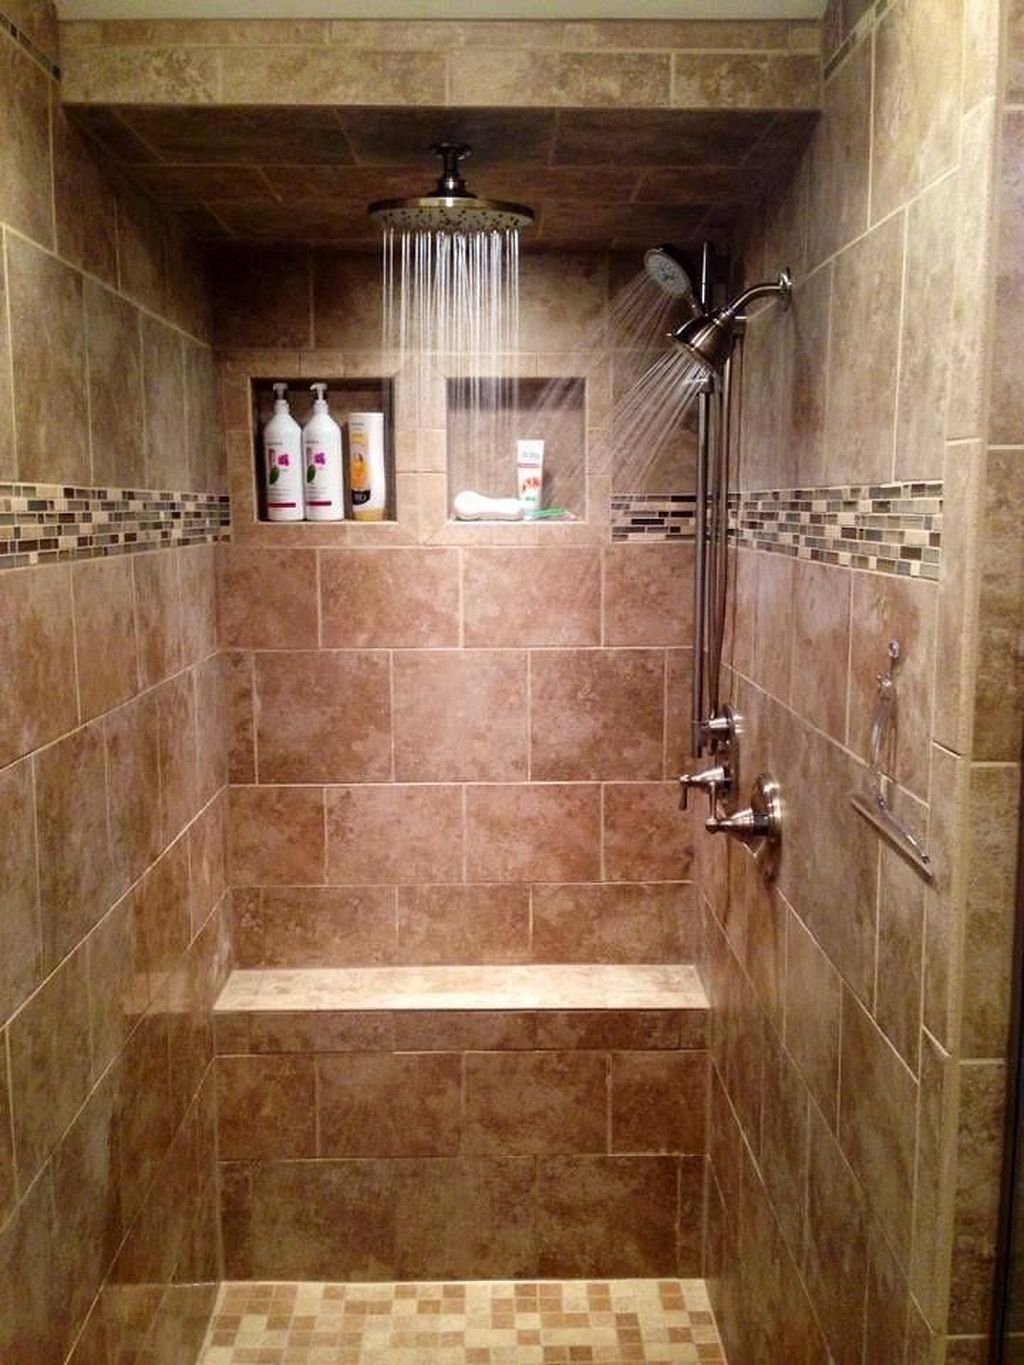 20 Awesome Rainfall Shower Ideas 13 in 2020   Tiny house ...